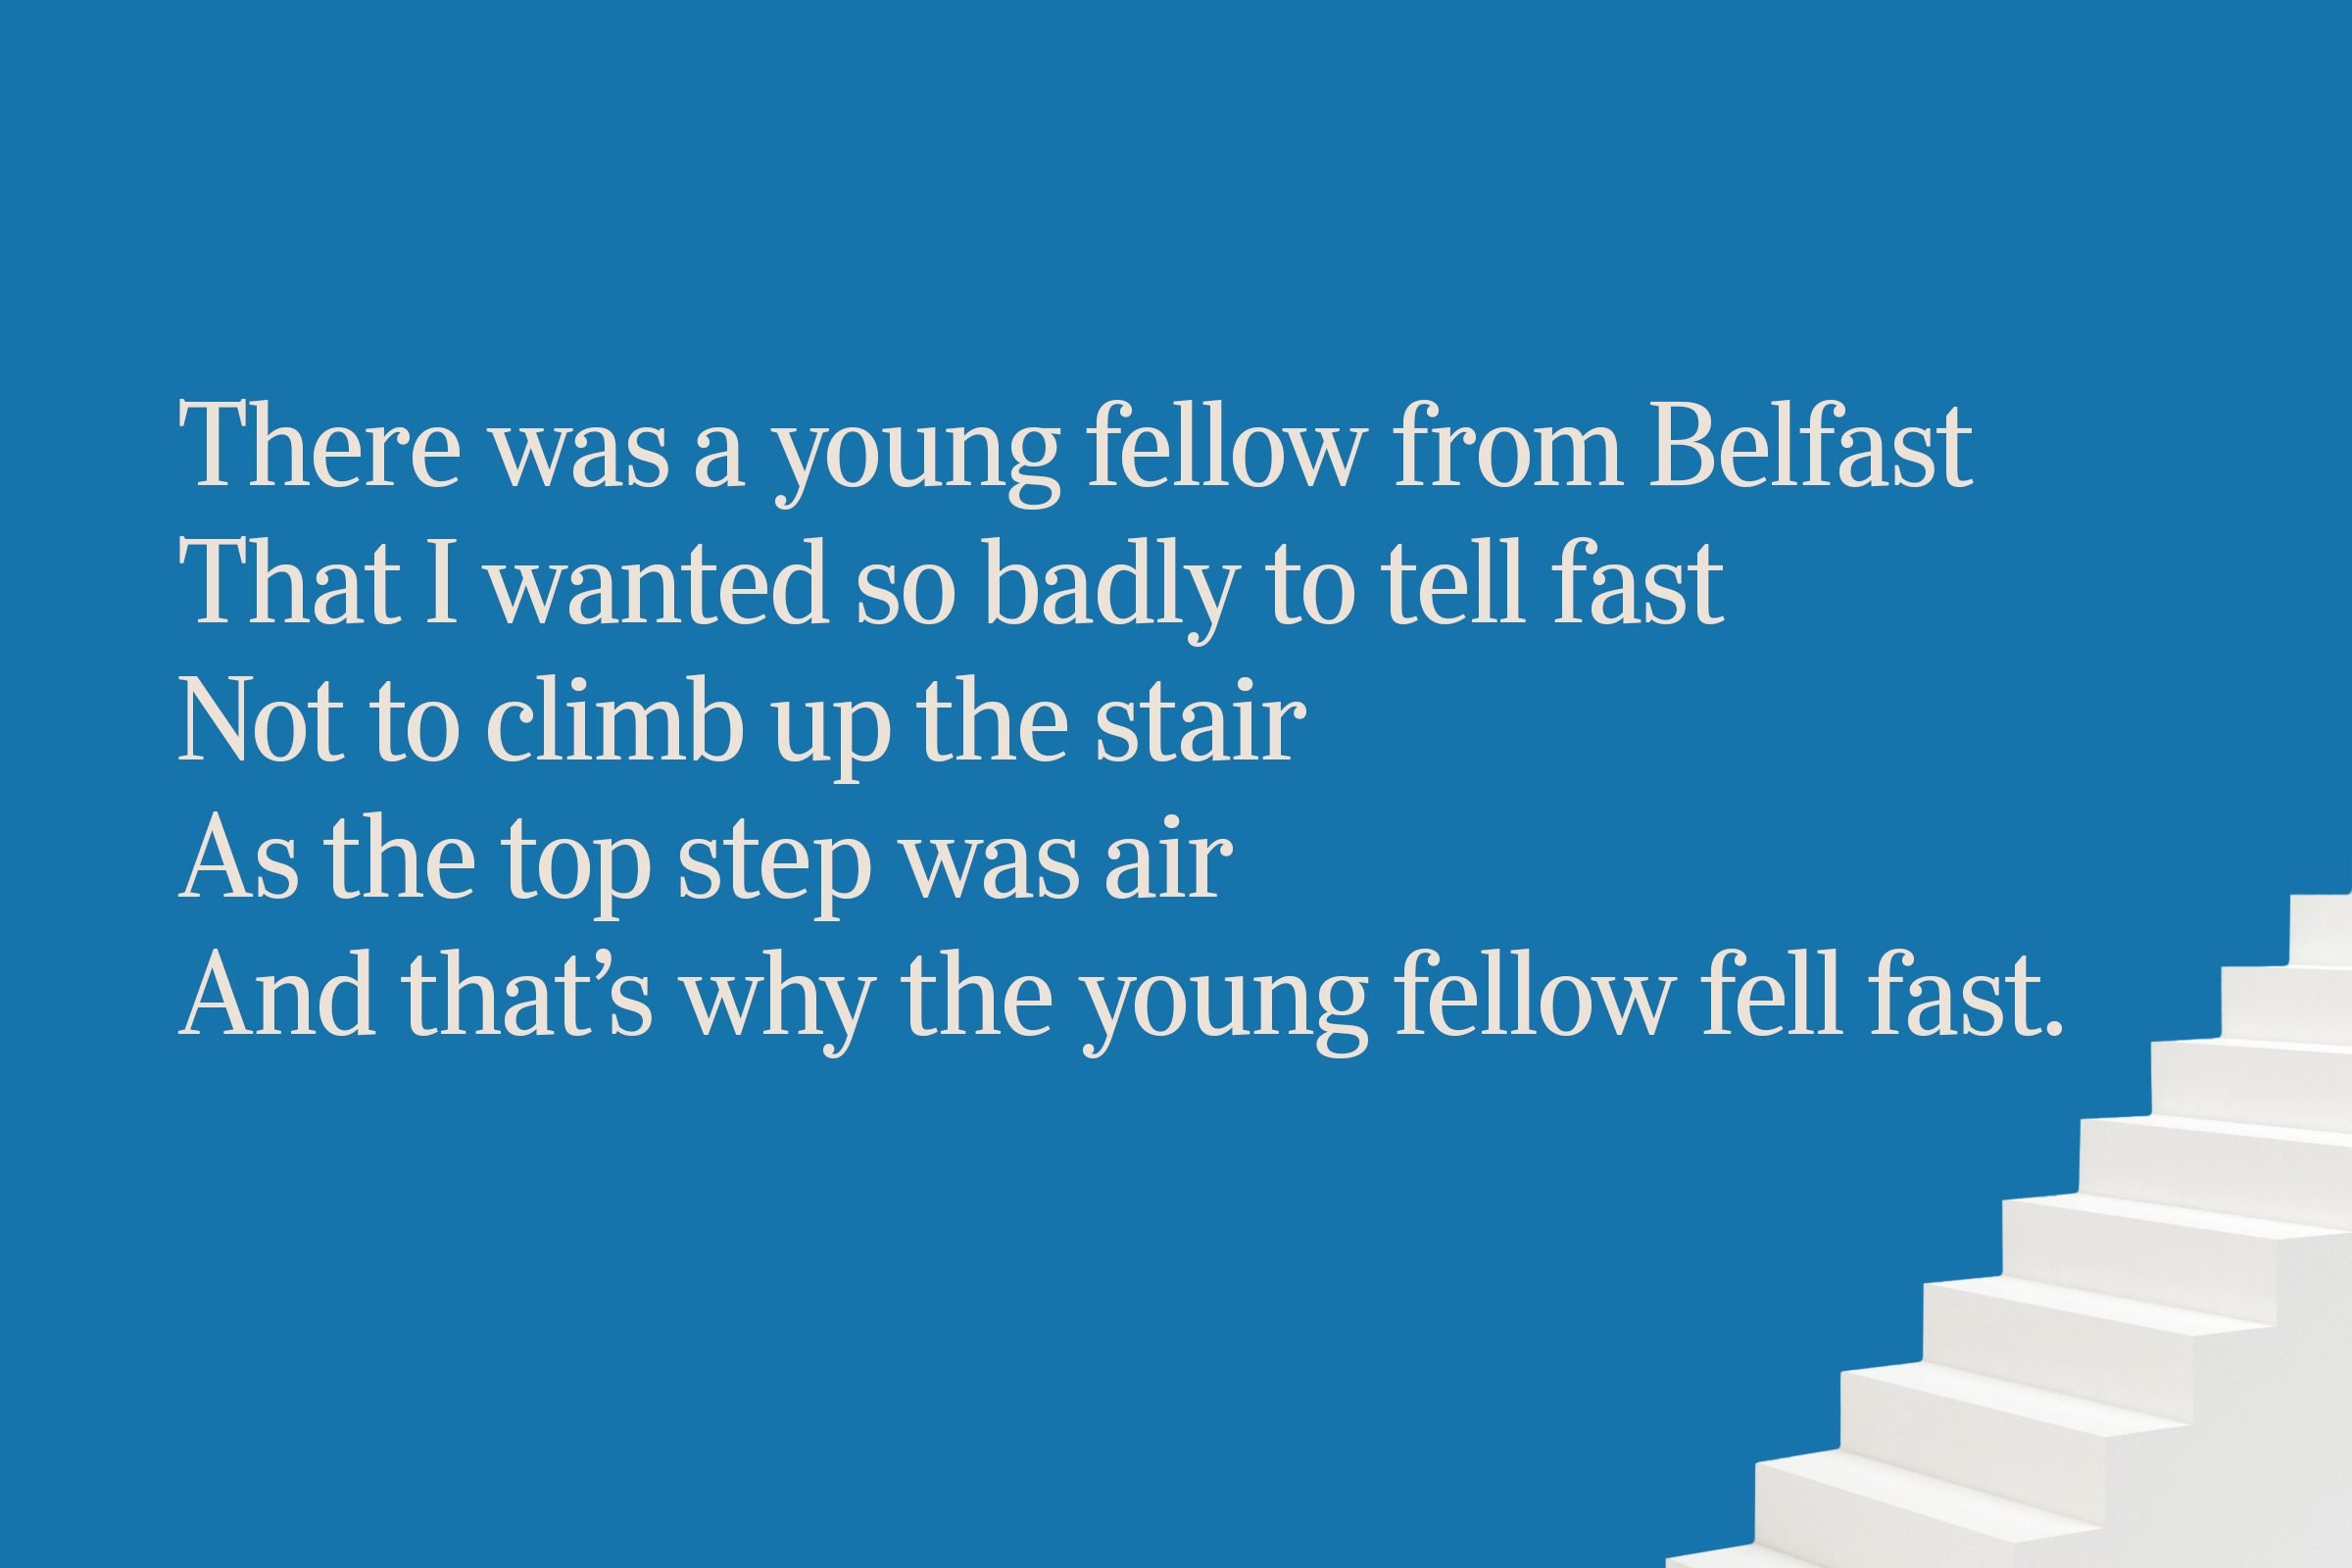 Stairs limerick for clever people